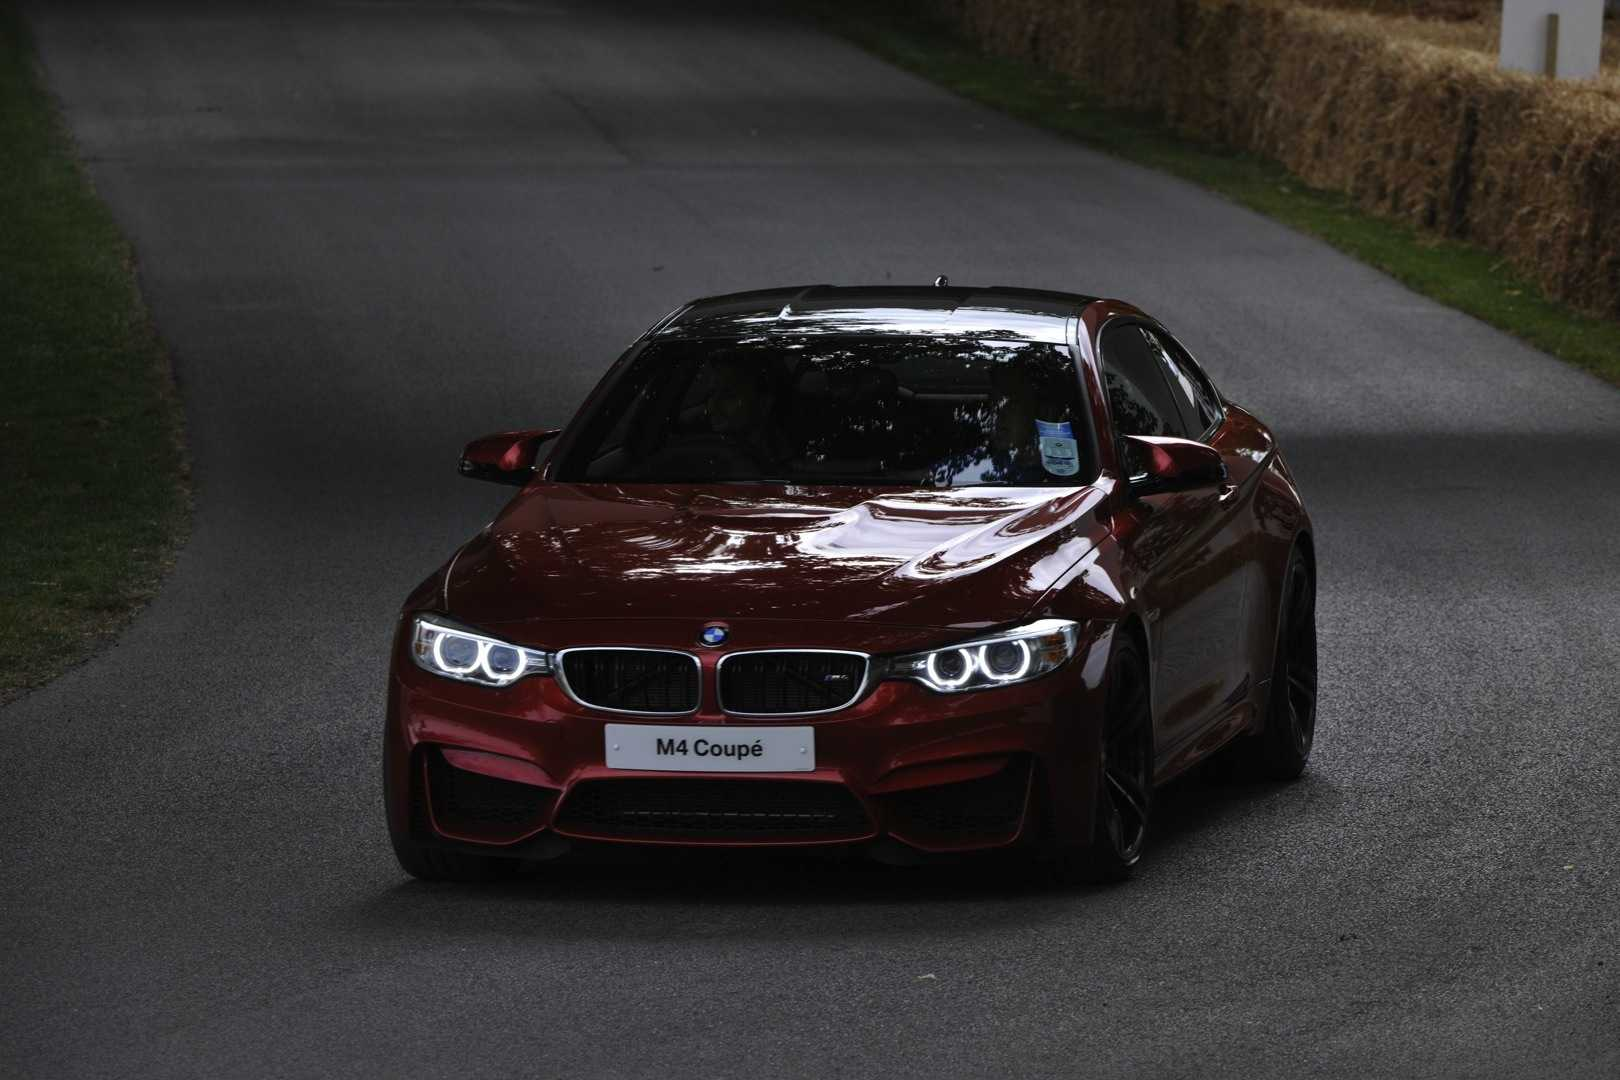 most wanted bmw m4 sports coupe to be released soon in the u s. Black Bedroom Furniture Sets. Home Design Ideas